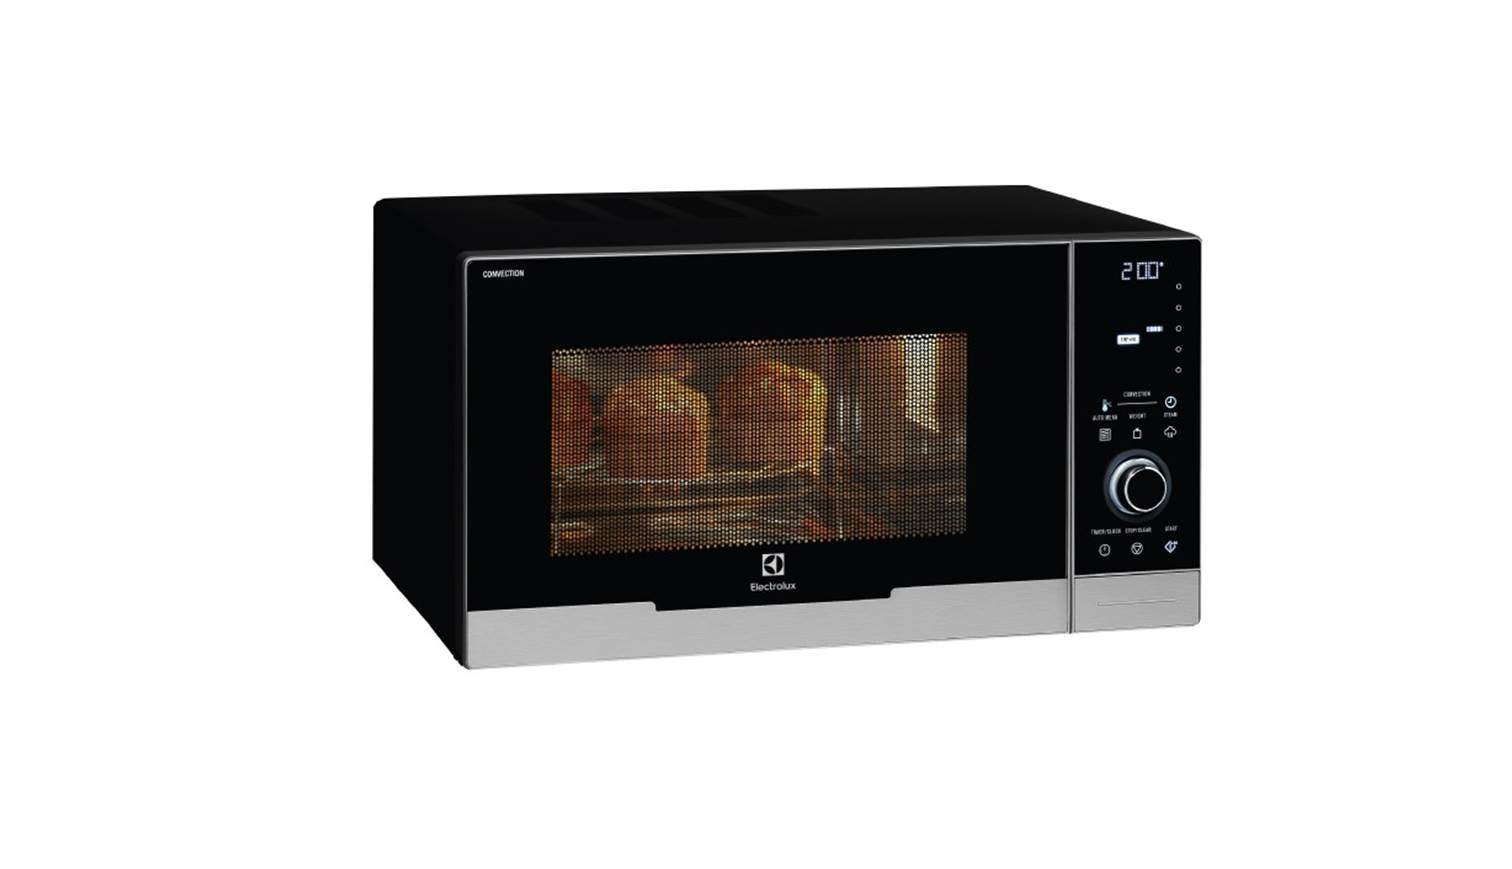 oven convection ovens handle pinterest on microwave commercial toaster with and best door images